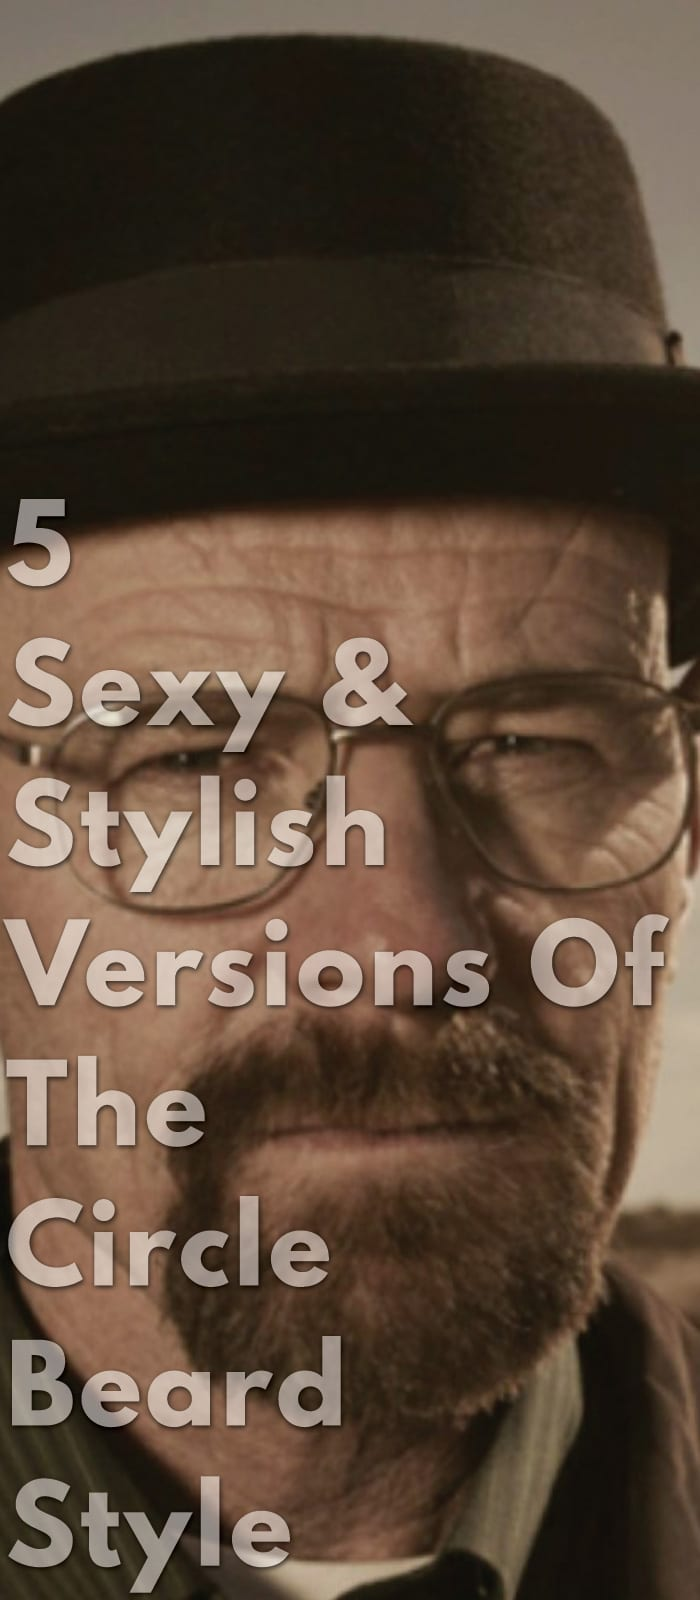 5-Sexy-&-Stylish-Versions-Of-The-Circle-Beard-Style